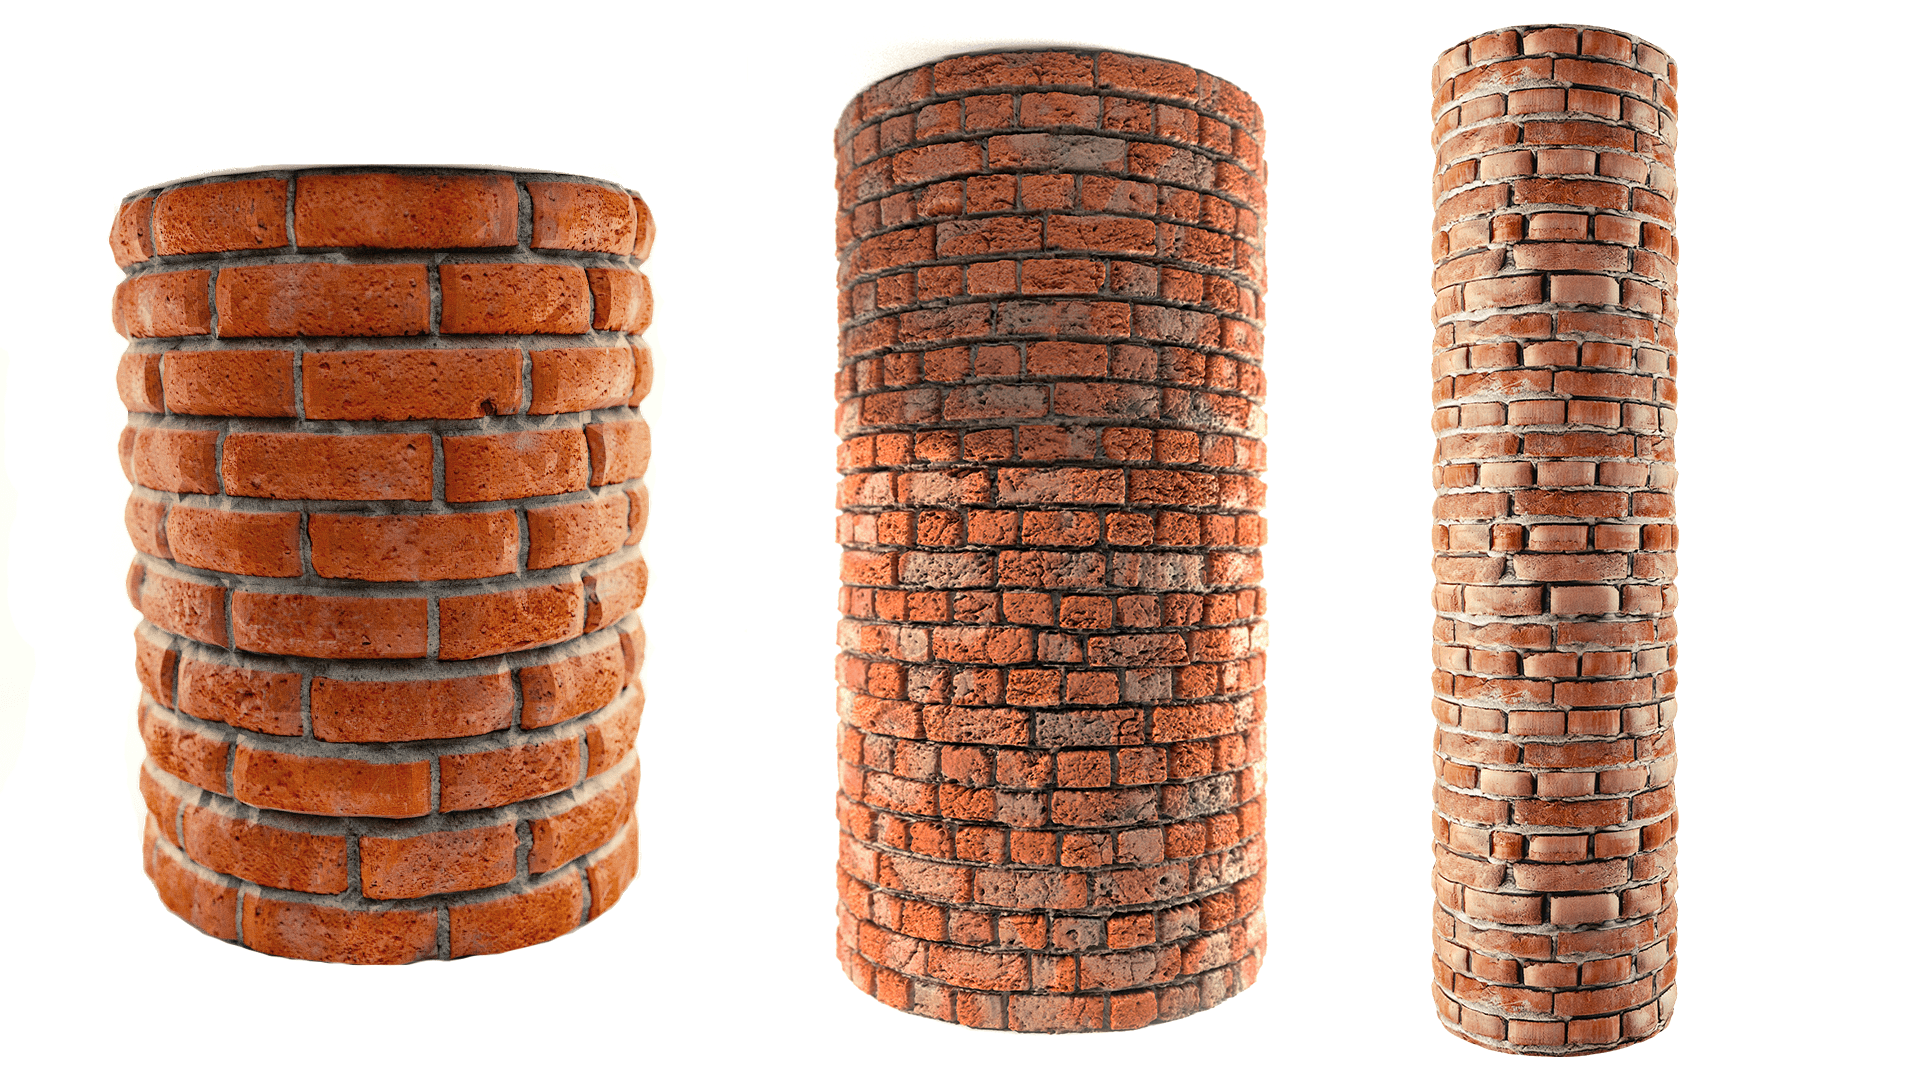 Textured Cylinders Using Textures Provided Respectively